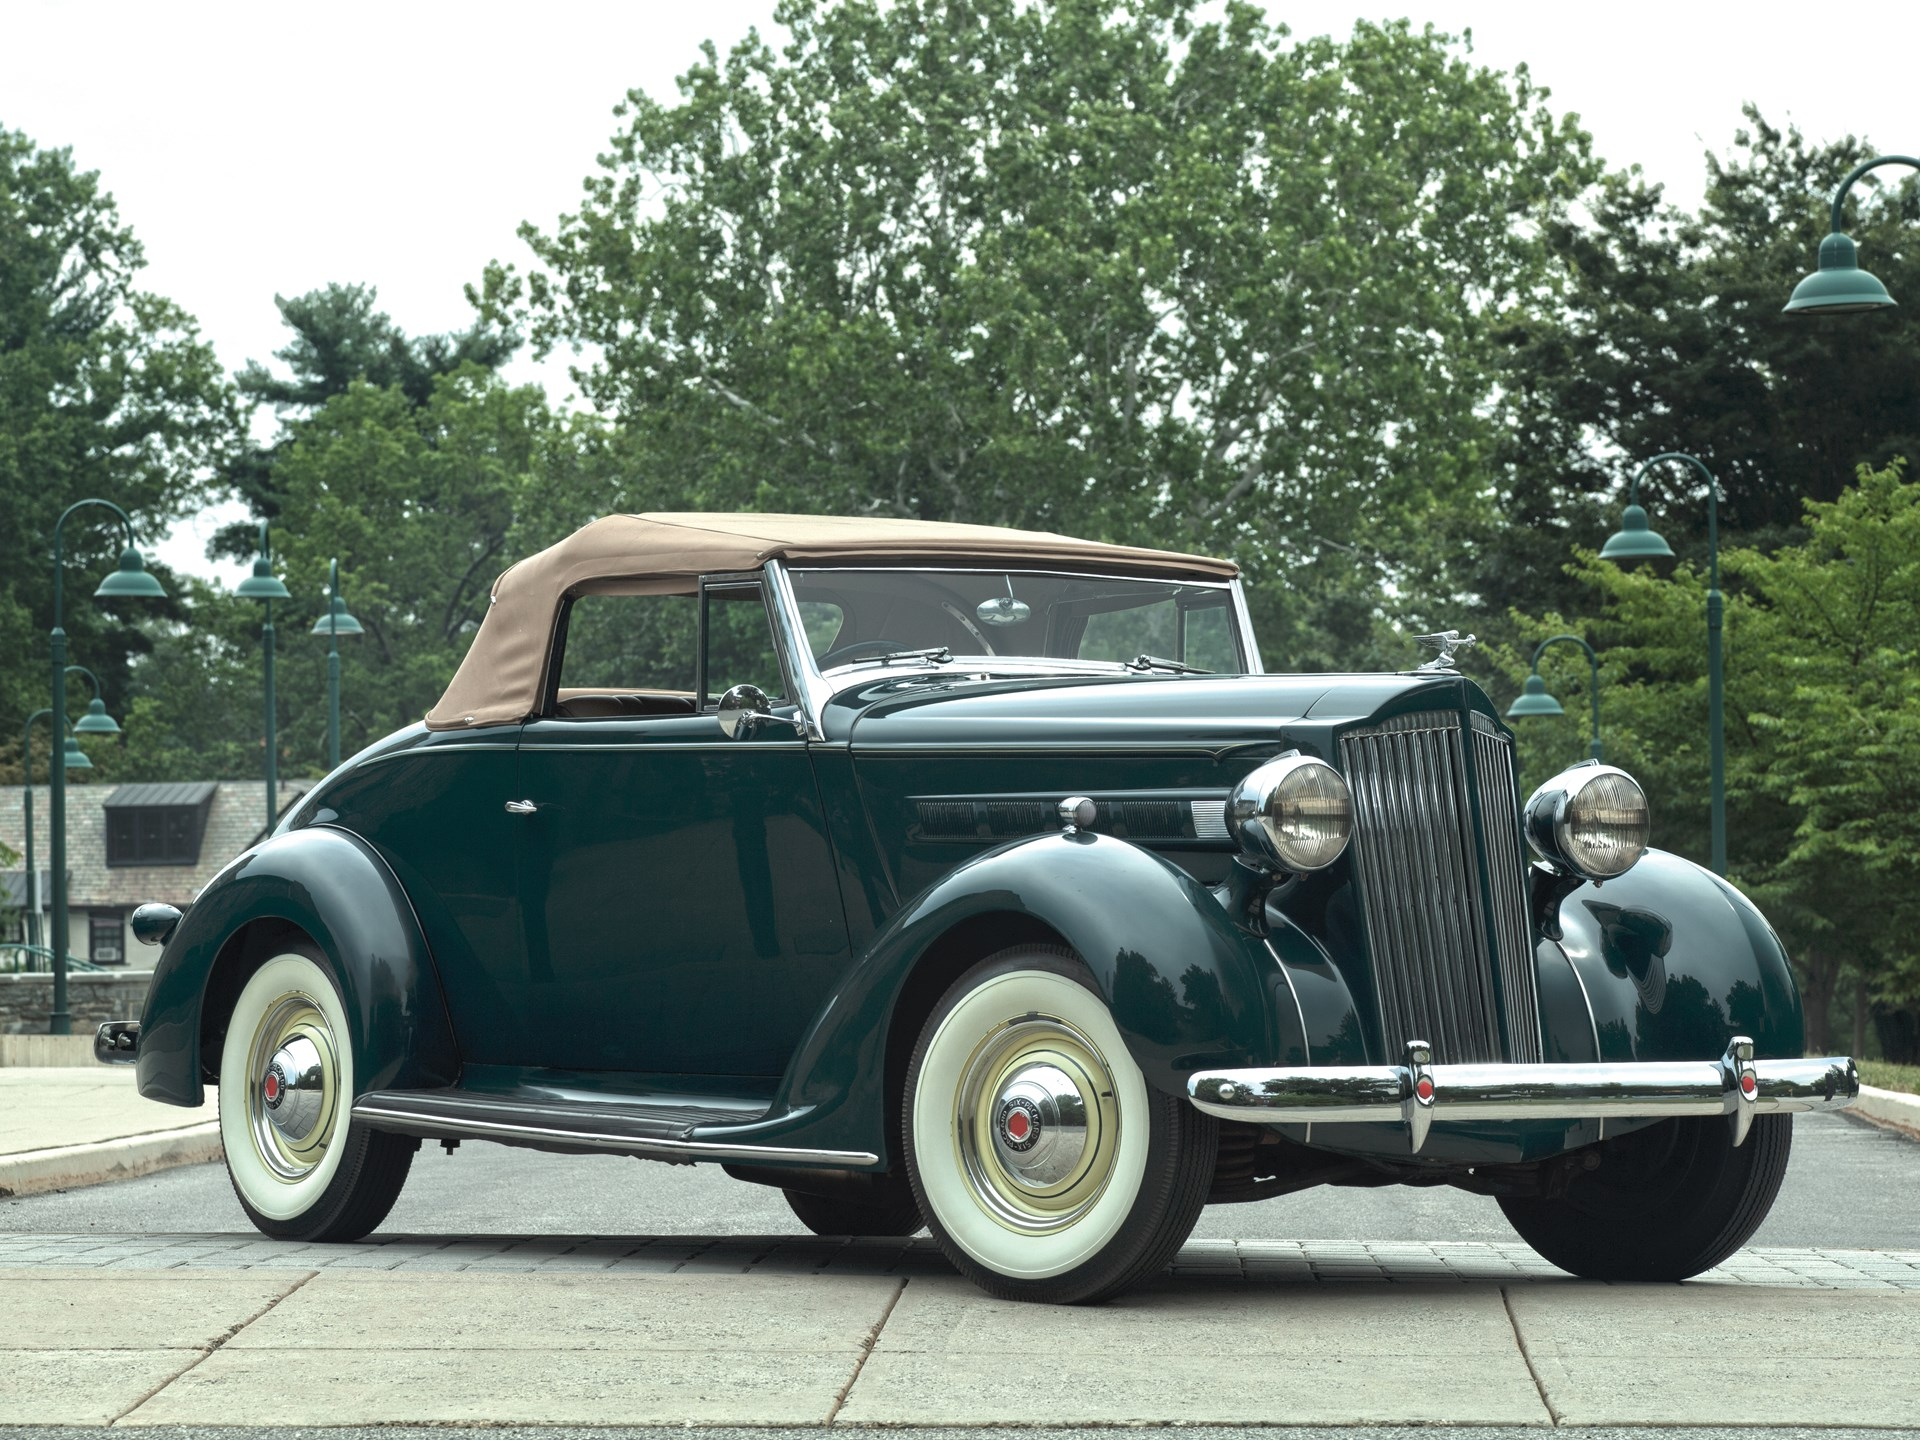 RM Sotheby's - 1937 Packard Six Rumble Seat Convertible